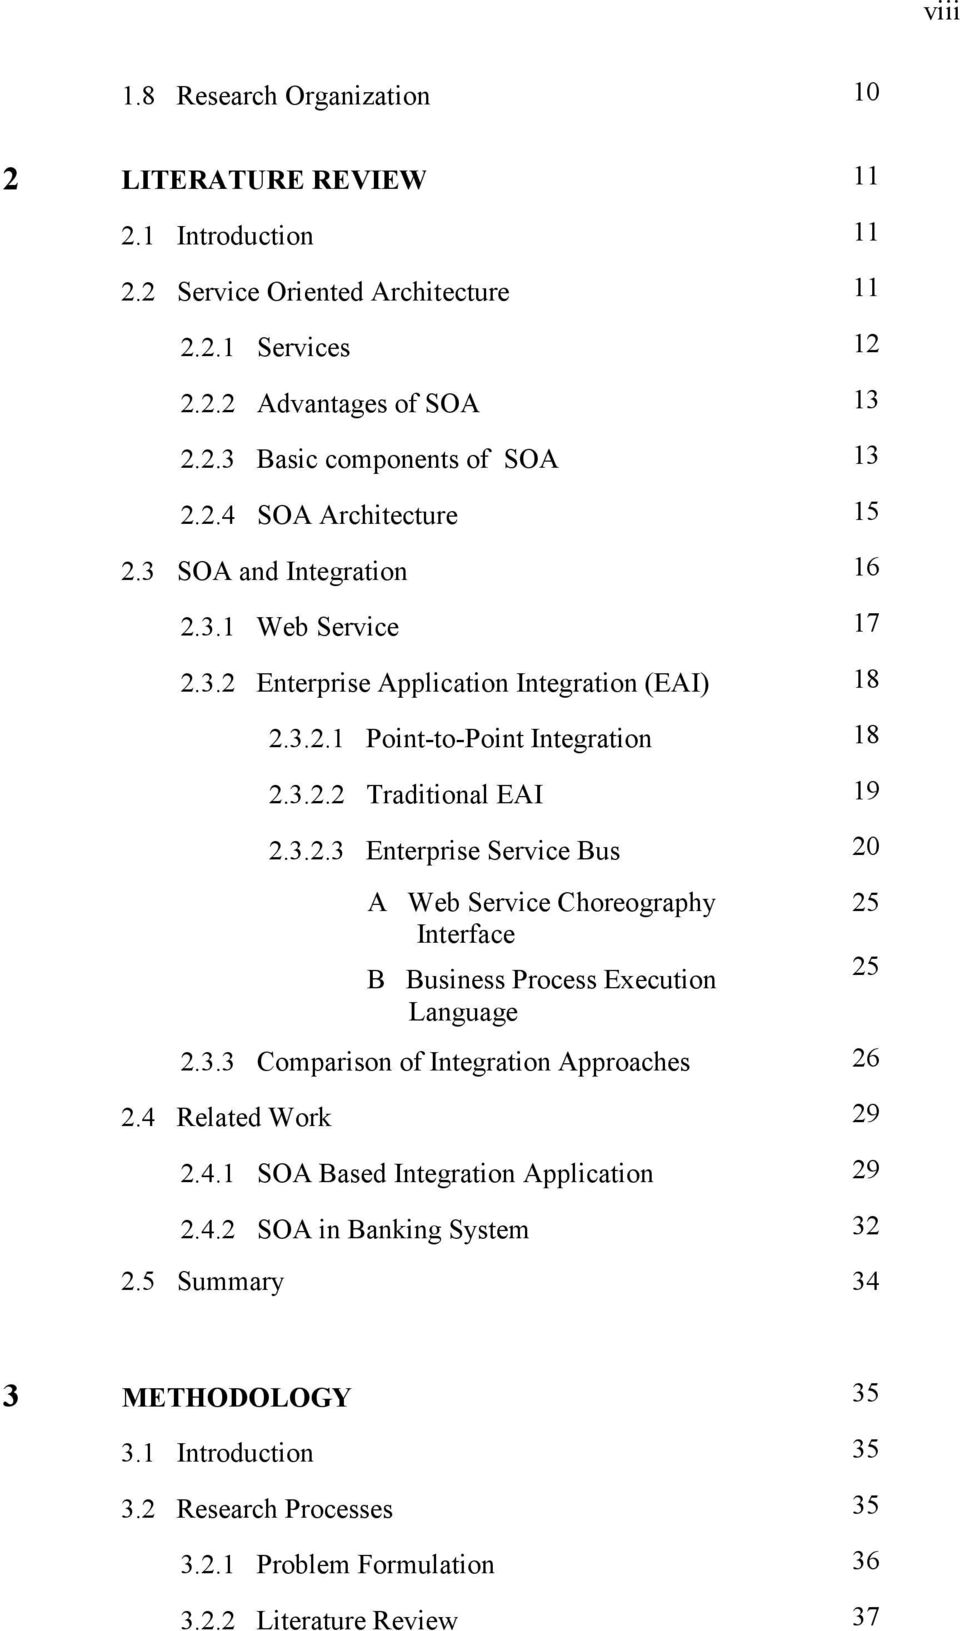 3.3 Comparison of Integration Approaches 26 2.4 Related Work 29 2.4.1 SOA Based Integration Application 29 2.4.2 SOA in Banking System 32 2.5 Summary 34 25 25 3 METHODOLOGY 35 3.